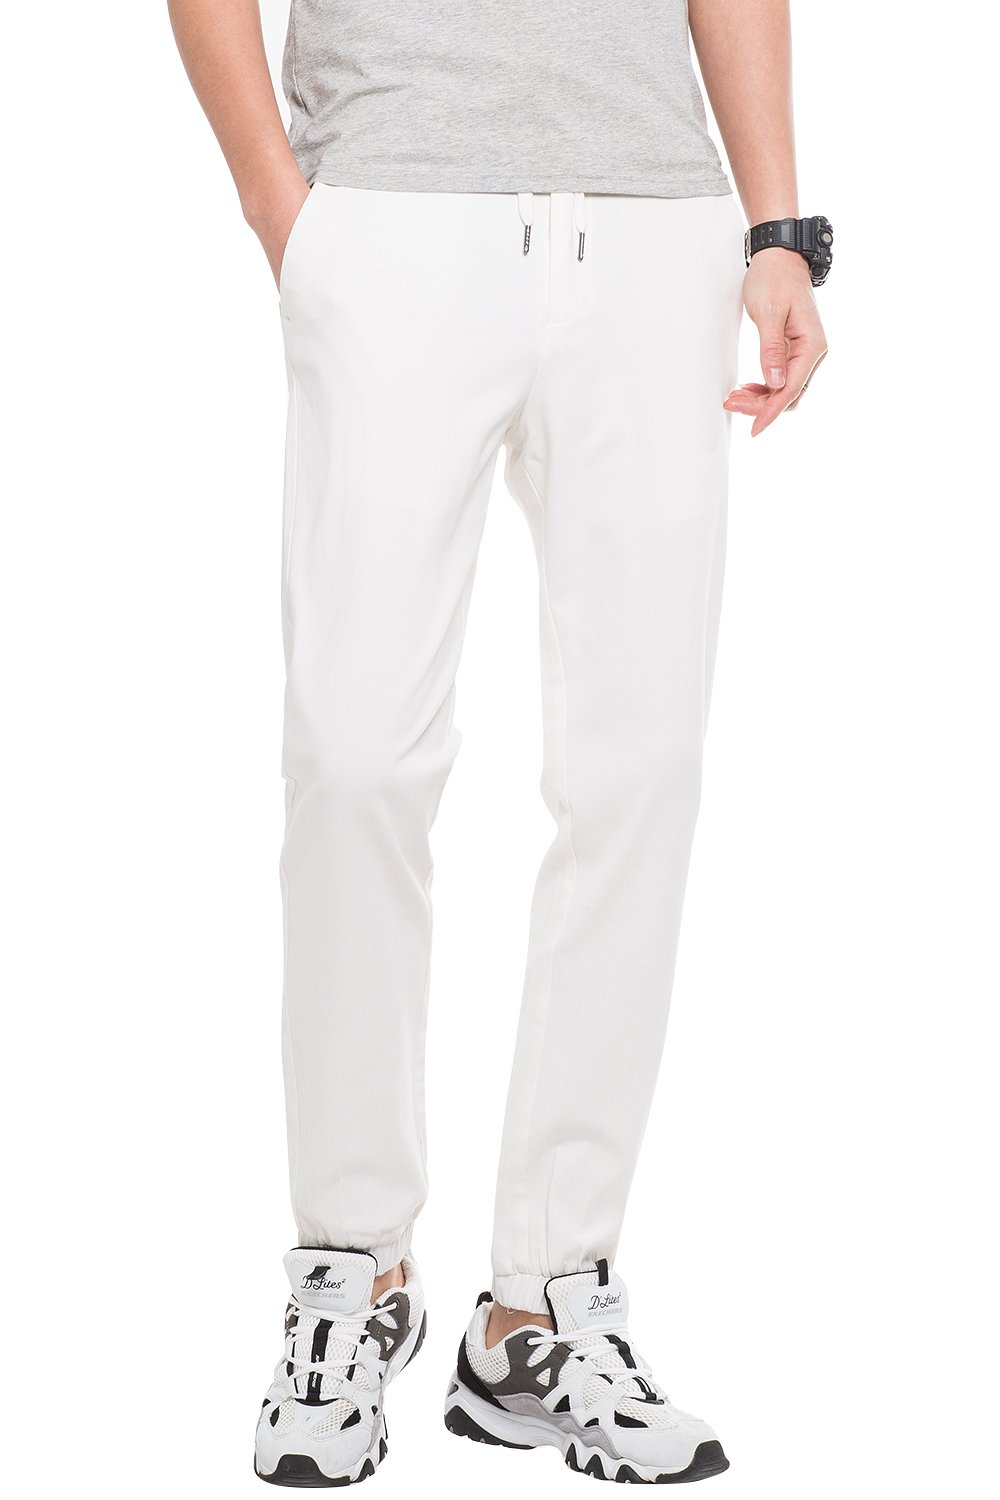 INFLATION Men's Stretchy Casual Jogger Pants  Blend Combed Cotton Formal Elastic Waist Trousers Dress Pants White US SIZE L by INFLATION (Image #1)